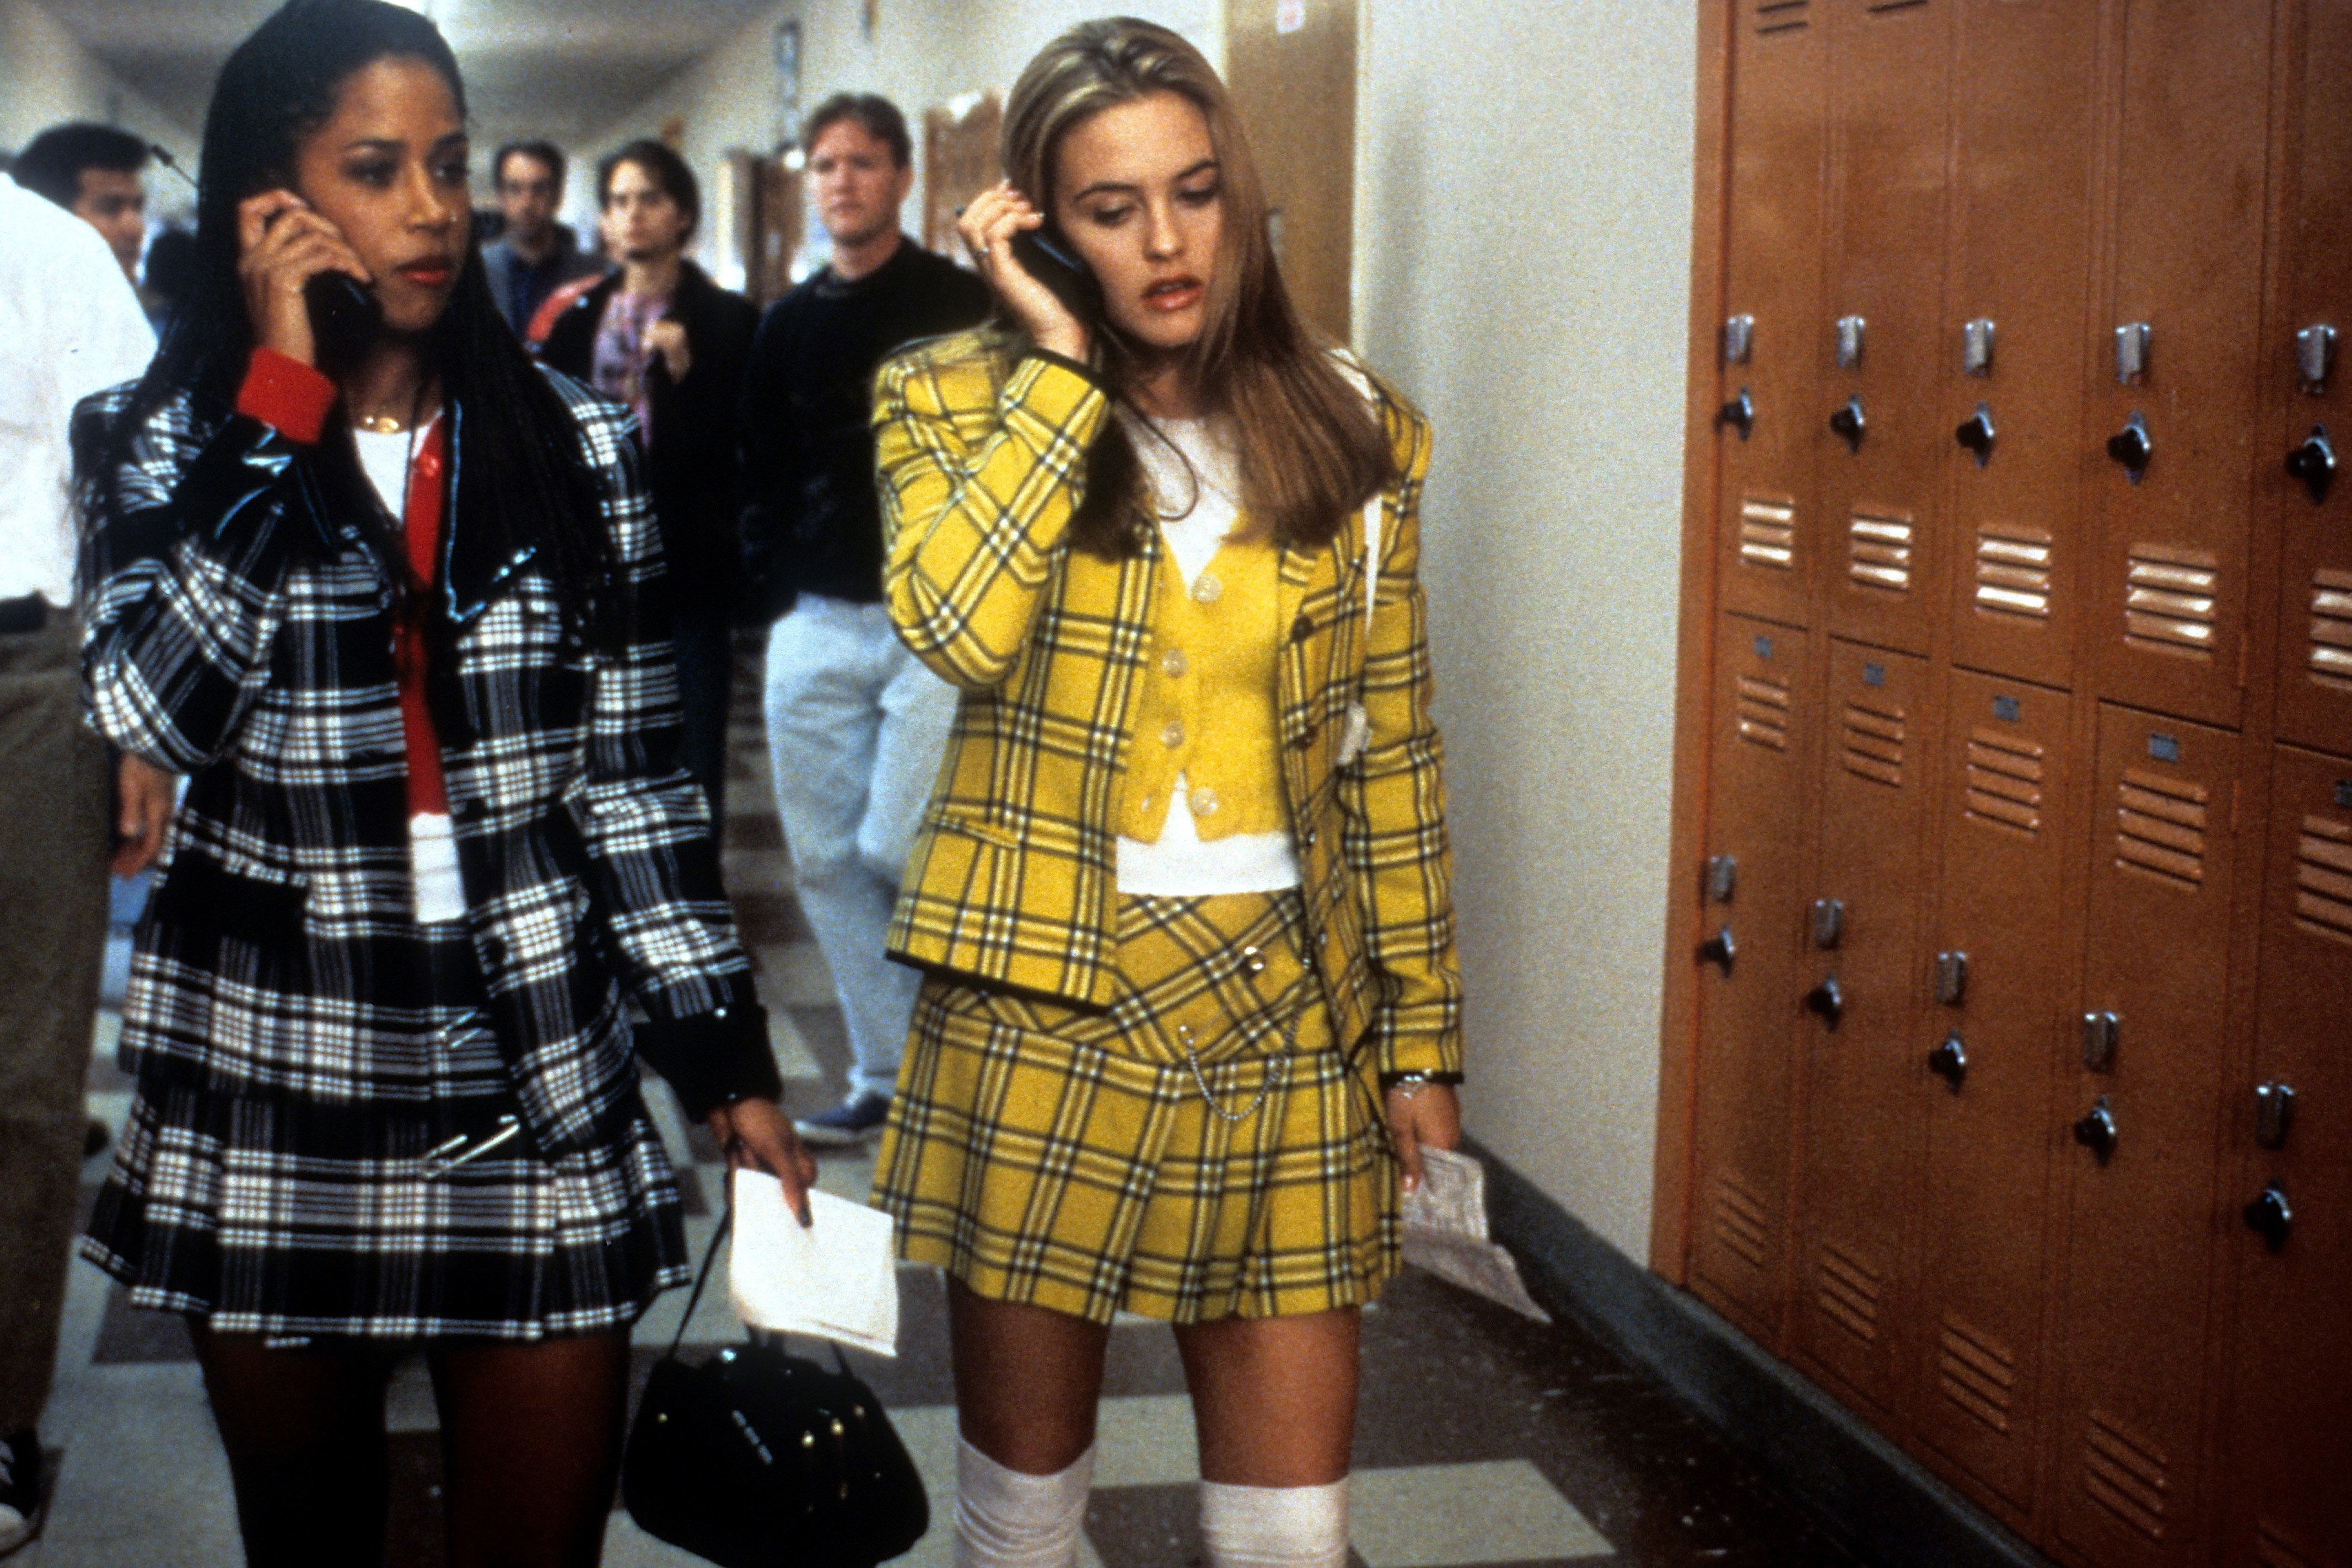 12 costumes ideas inspired by 90s icons for an epically nostalgic 12 costumes ideas inspired by 90s icons for an epically nostalgic halloween sciox Image collections